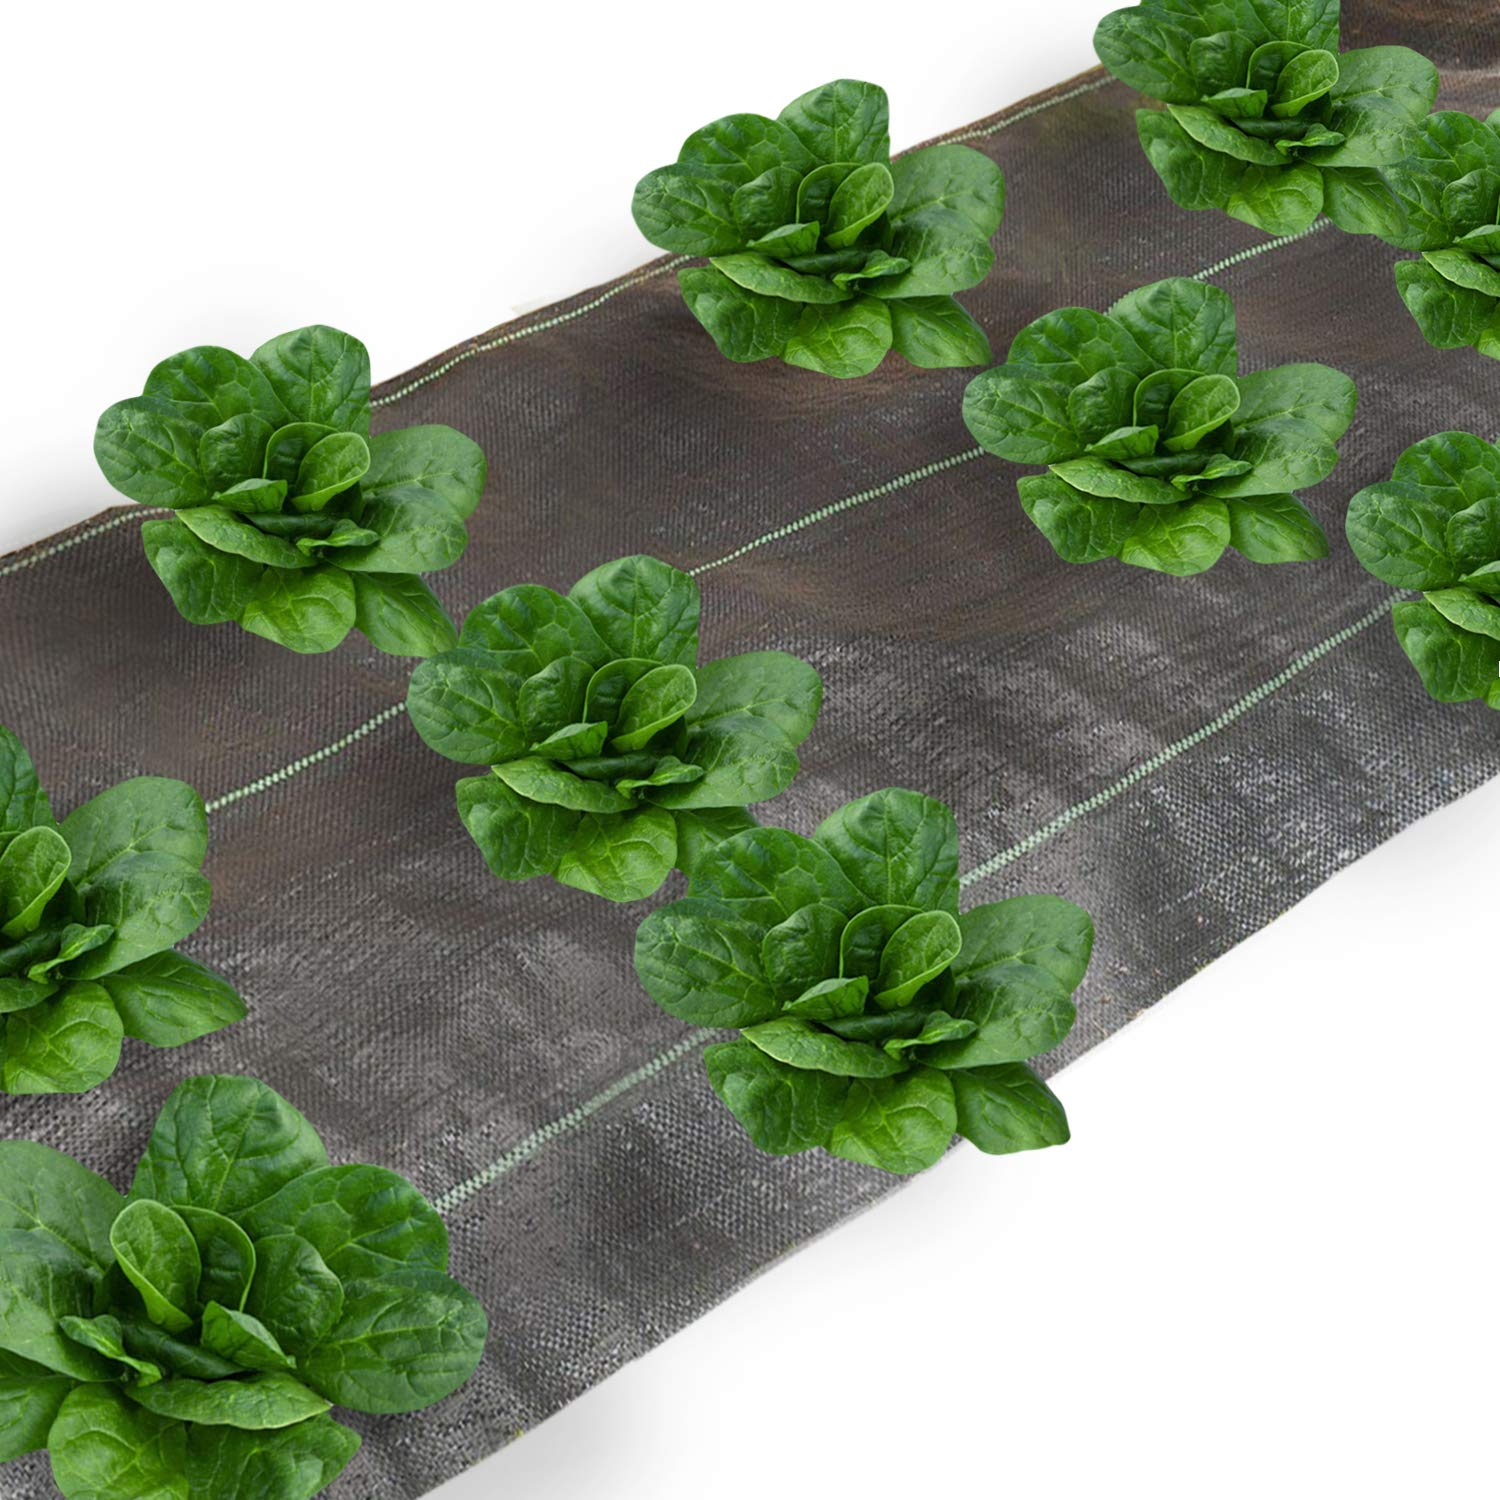 Agfabric Landscape Ground Cover 4x300ft Heavy PP Woven Weed Barrier for Vegetables,Soil Erosion Prevention and UV stabilized, Plastic Mulch Weed Block